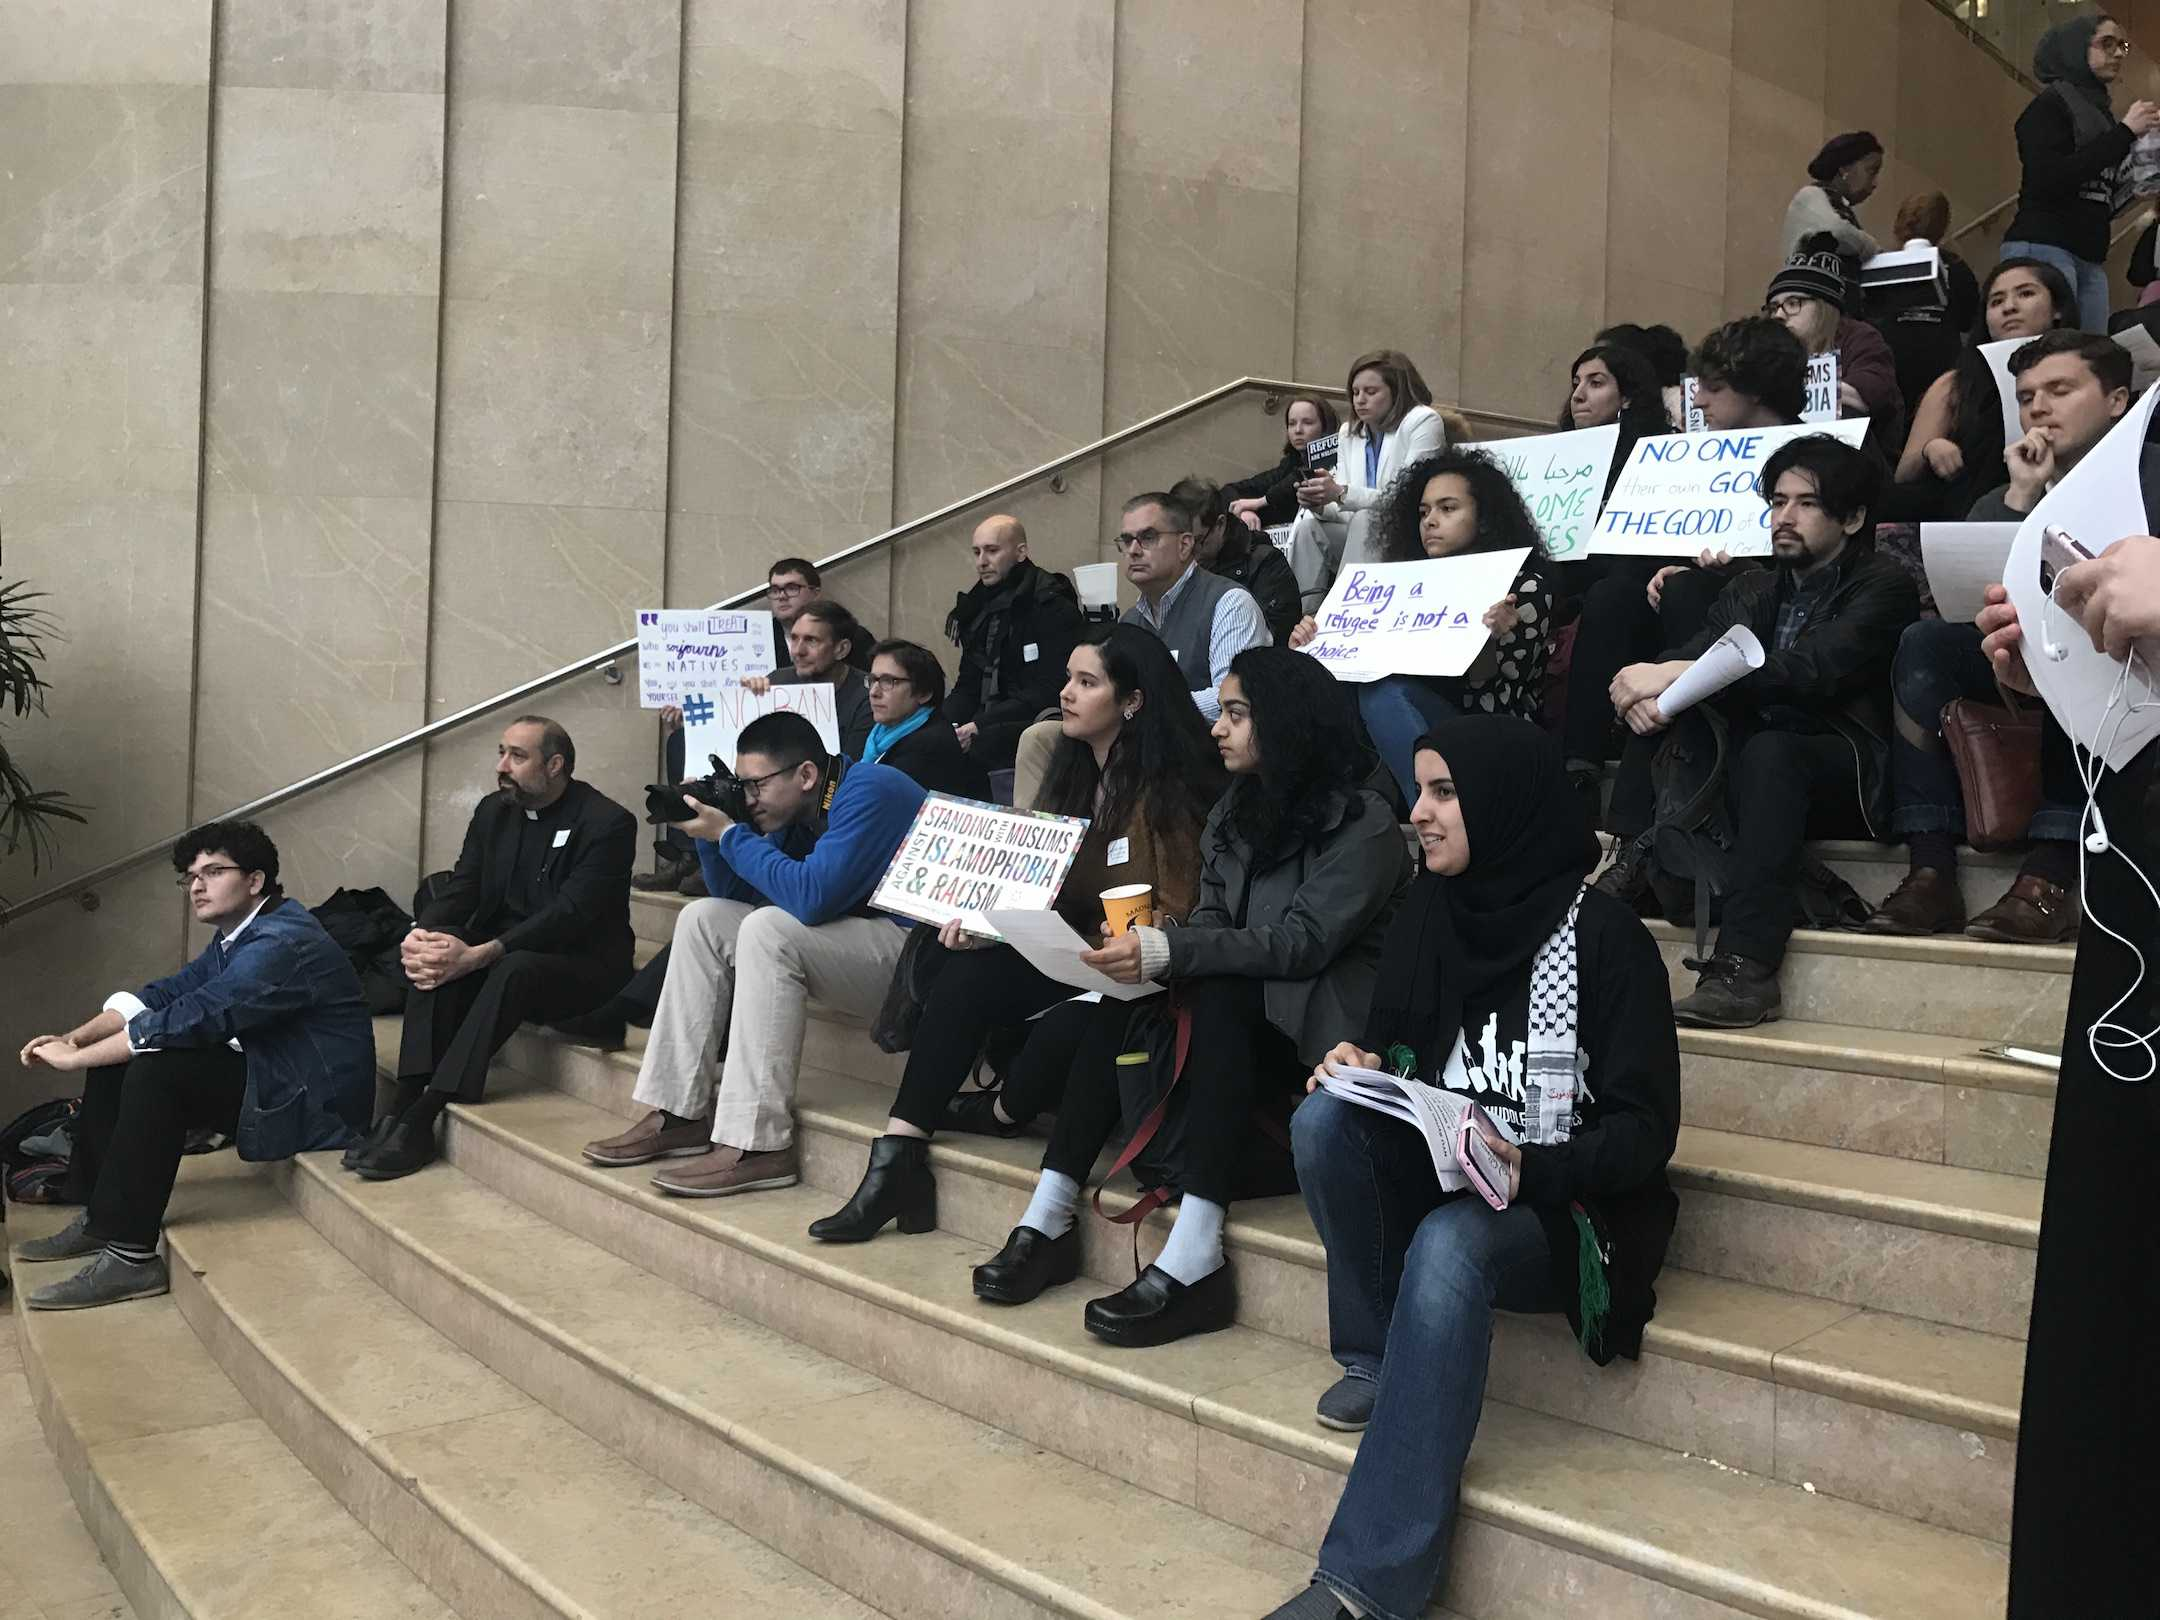 A rally for Syrian Refugee Awareness Week was at the staircase of the Kimmel Center for University Life. Rabbi Sharon Kleinbaum, founder of the Salam Arabic Lutheran Church Khader El-Yateem and a many NYU students spoke at the event.